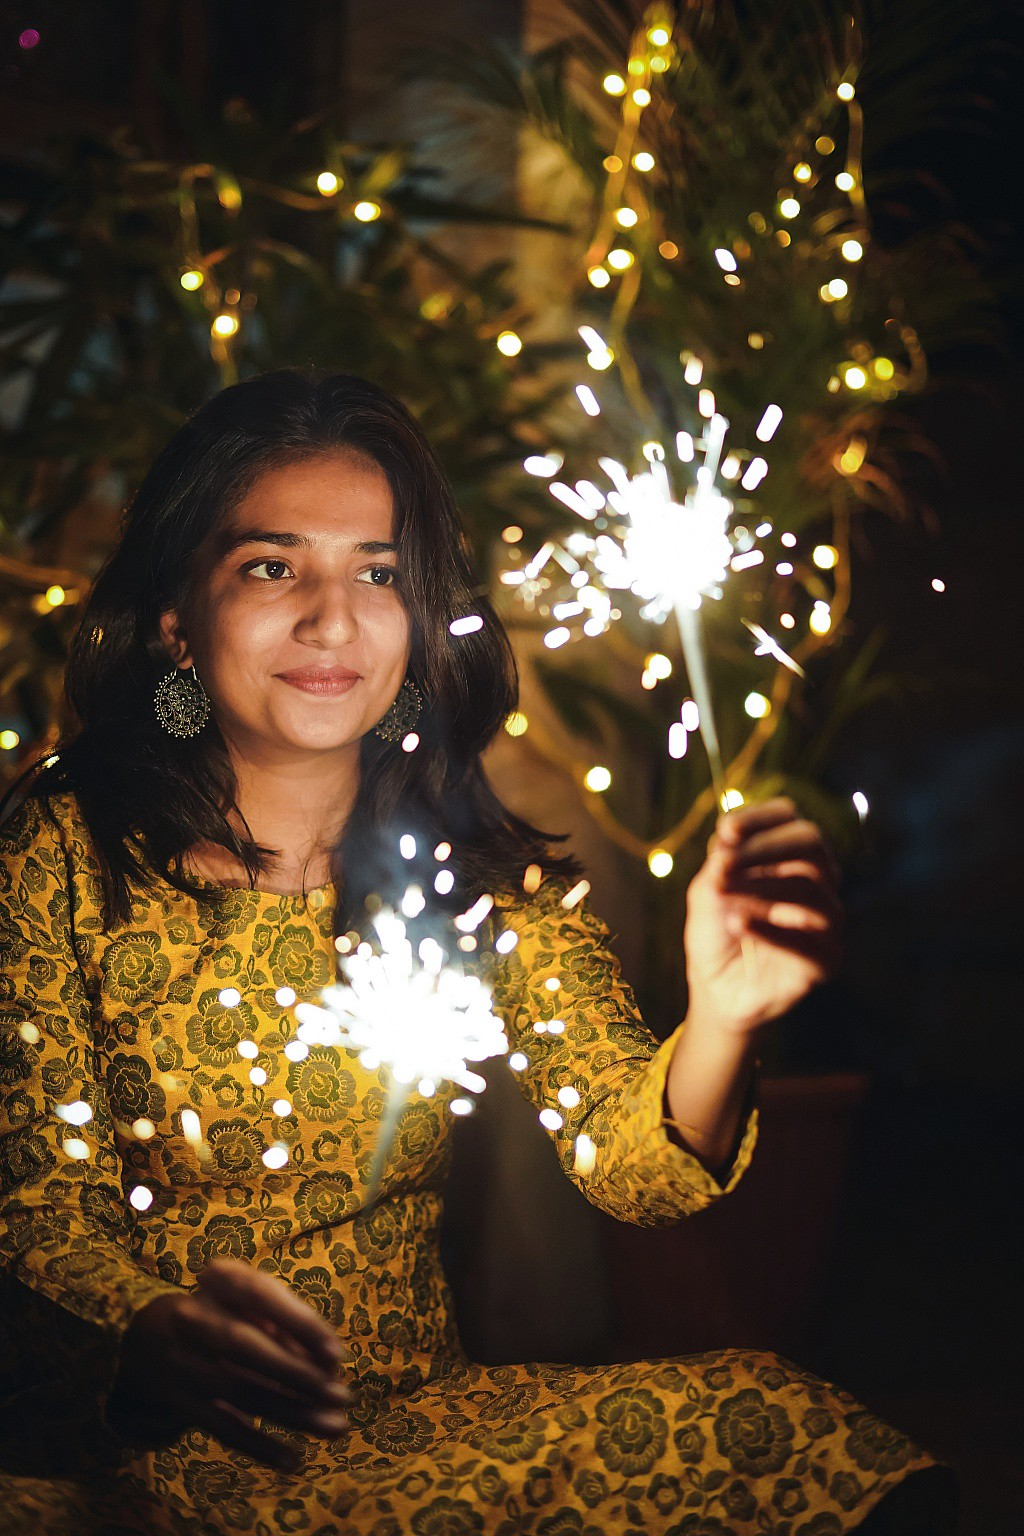 40 Best Photos Of This Year S Diwali Celebration By Indian Photographers By Halla Photo Contests Halla Photo Contests